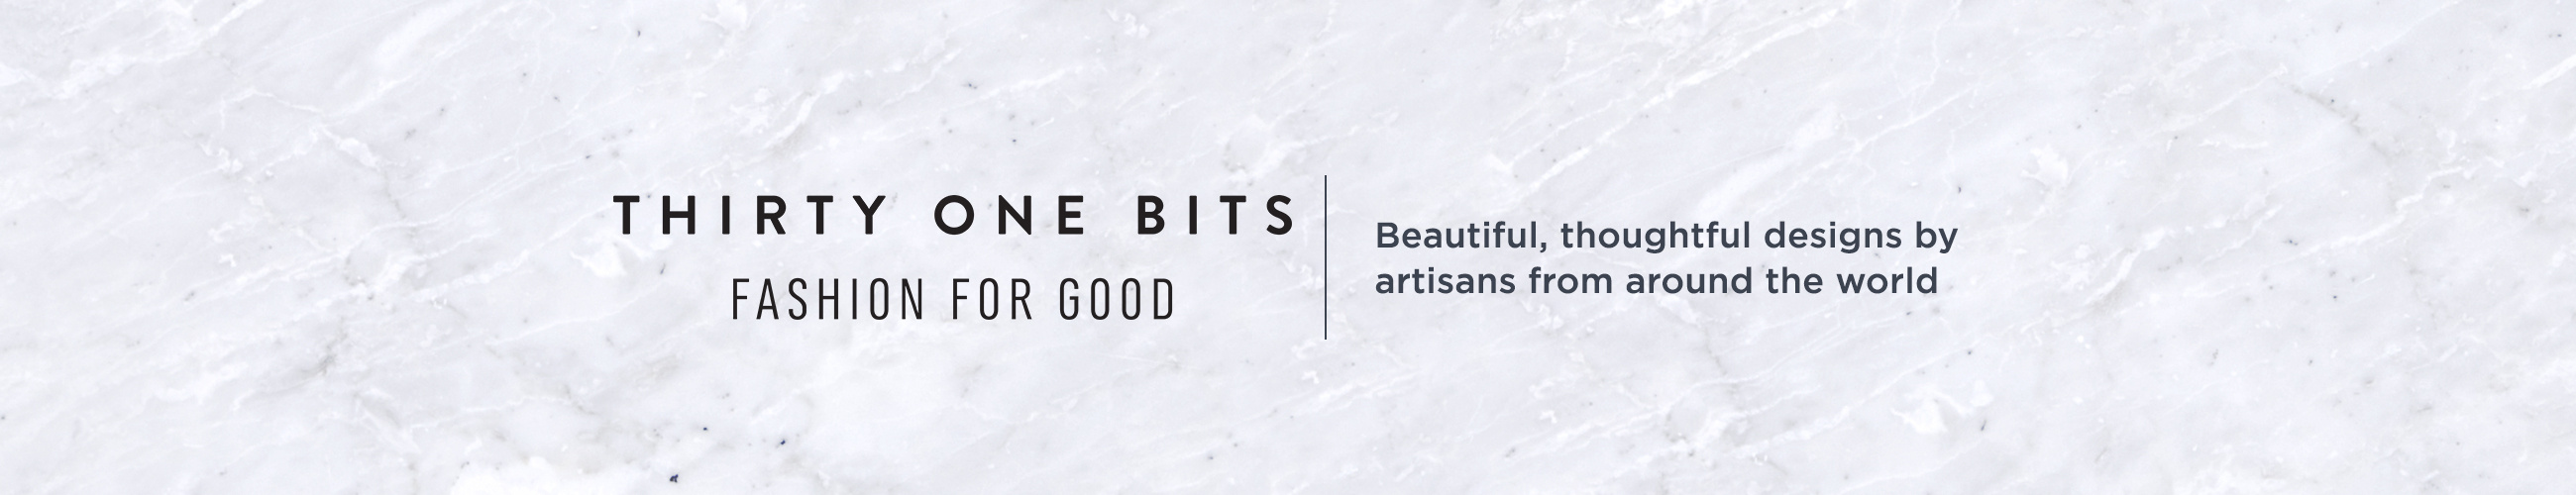 31 Bits Fashion for Good. Beautiful, thoughtful designs by artisans from around the world